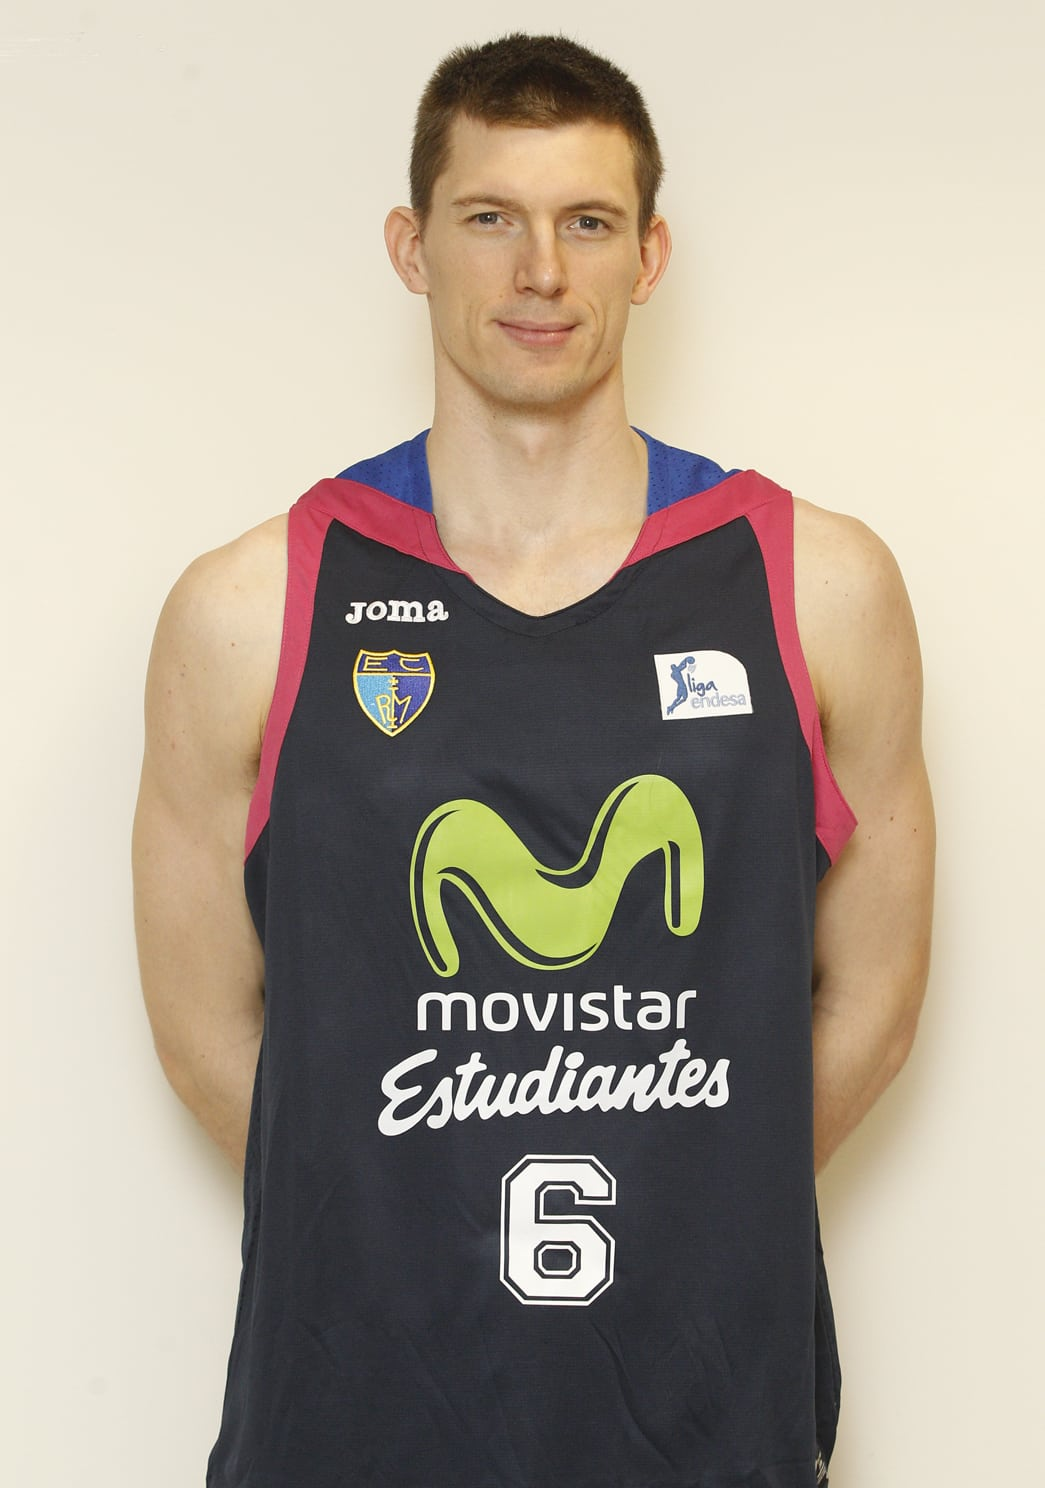 6. Pavel Pumprla